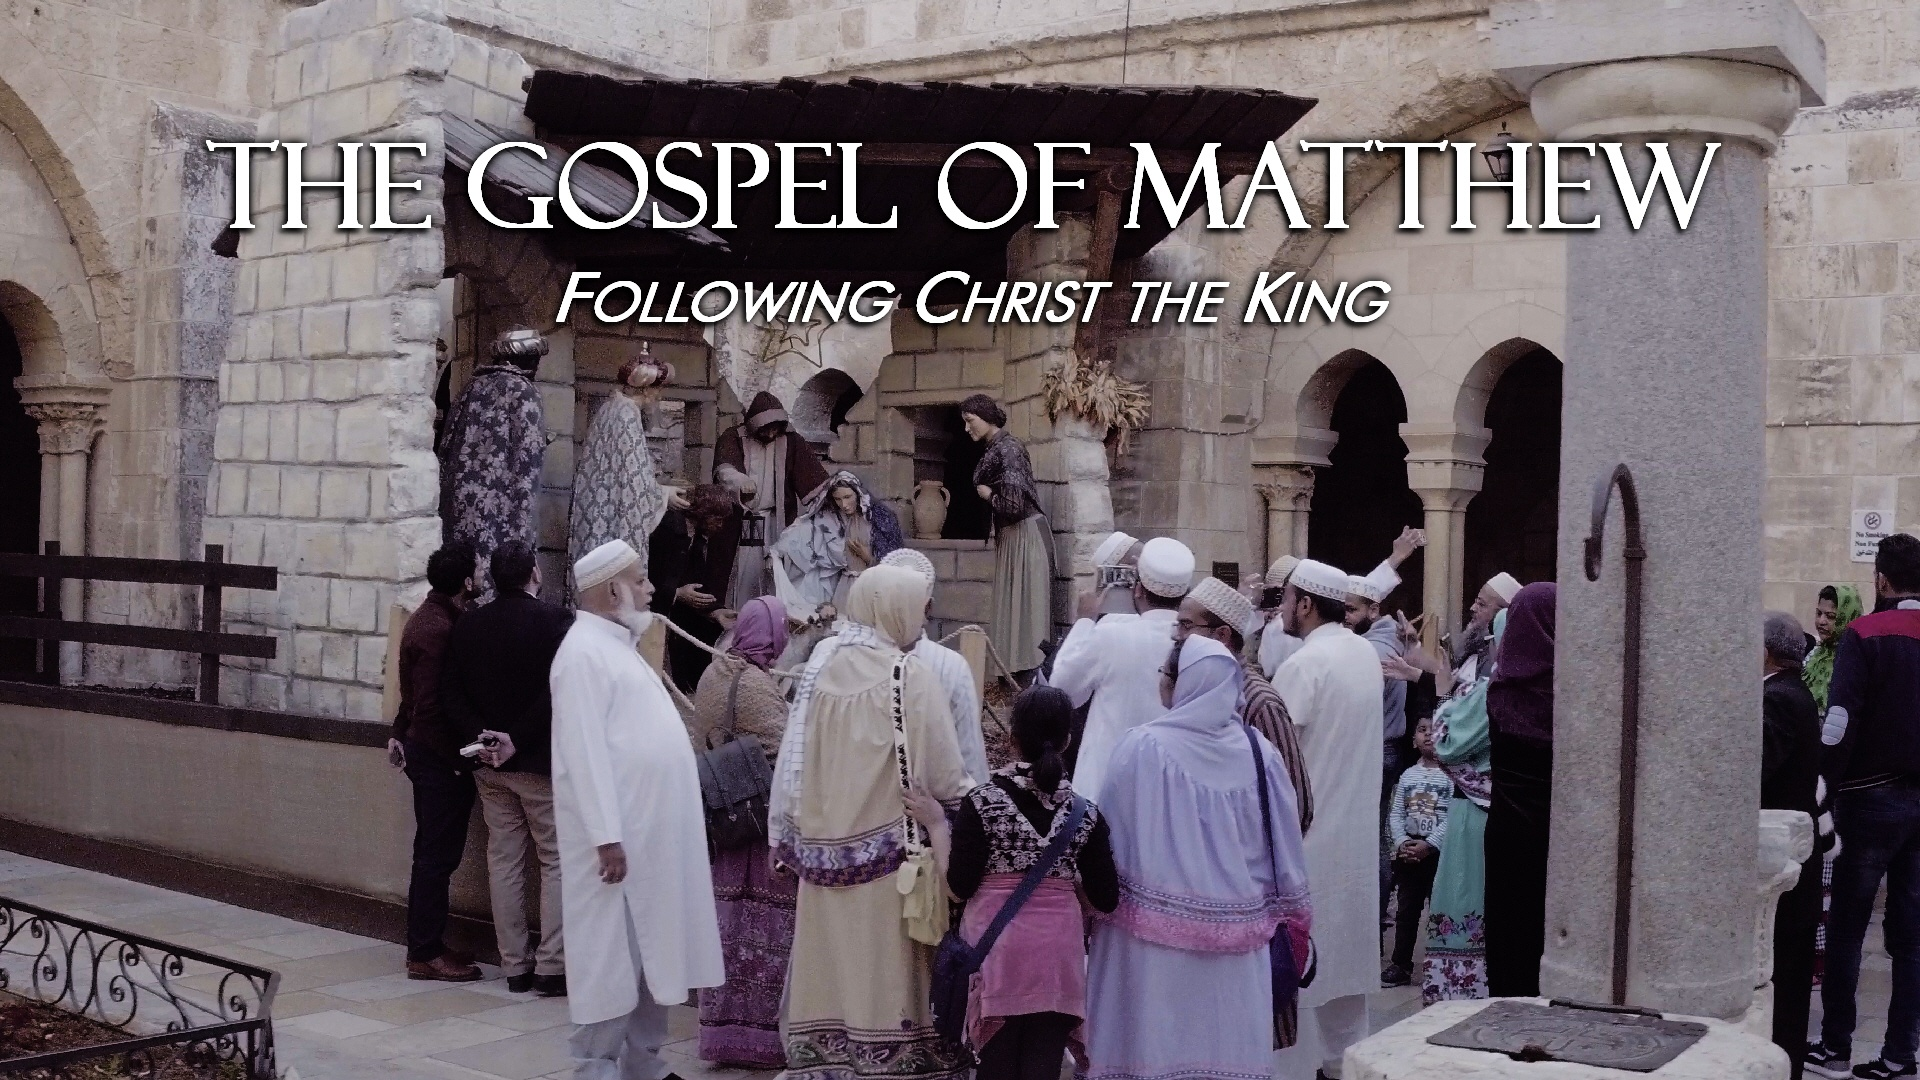 Data 2fimages 2f4tmpcmyfsbmz8qwcef9w the 20gospel 20of 20matthew 20  20following 20christ 20the 20king